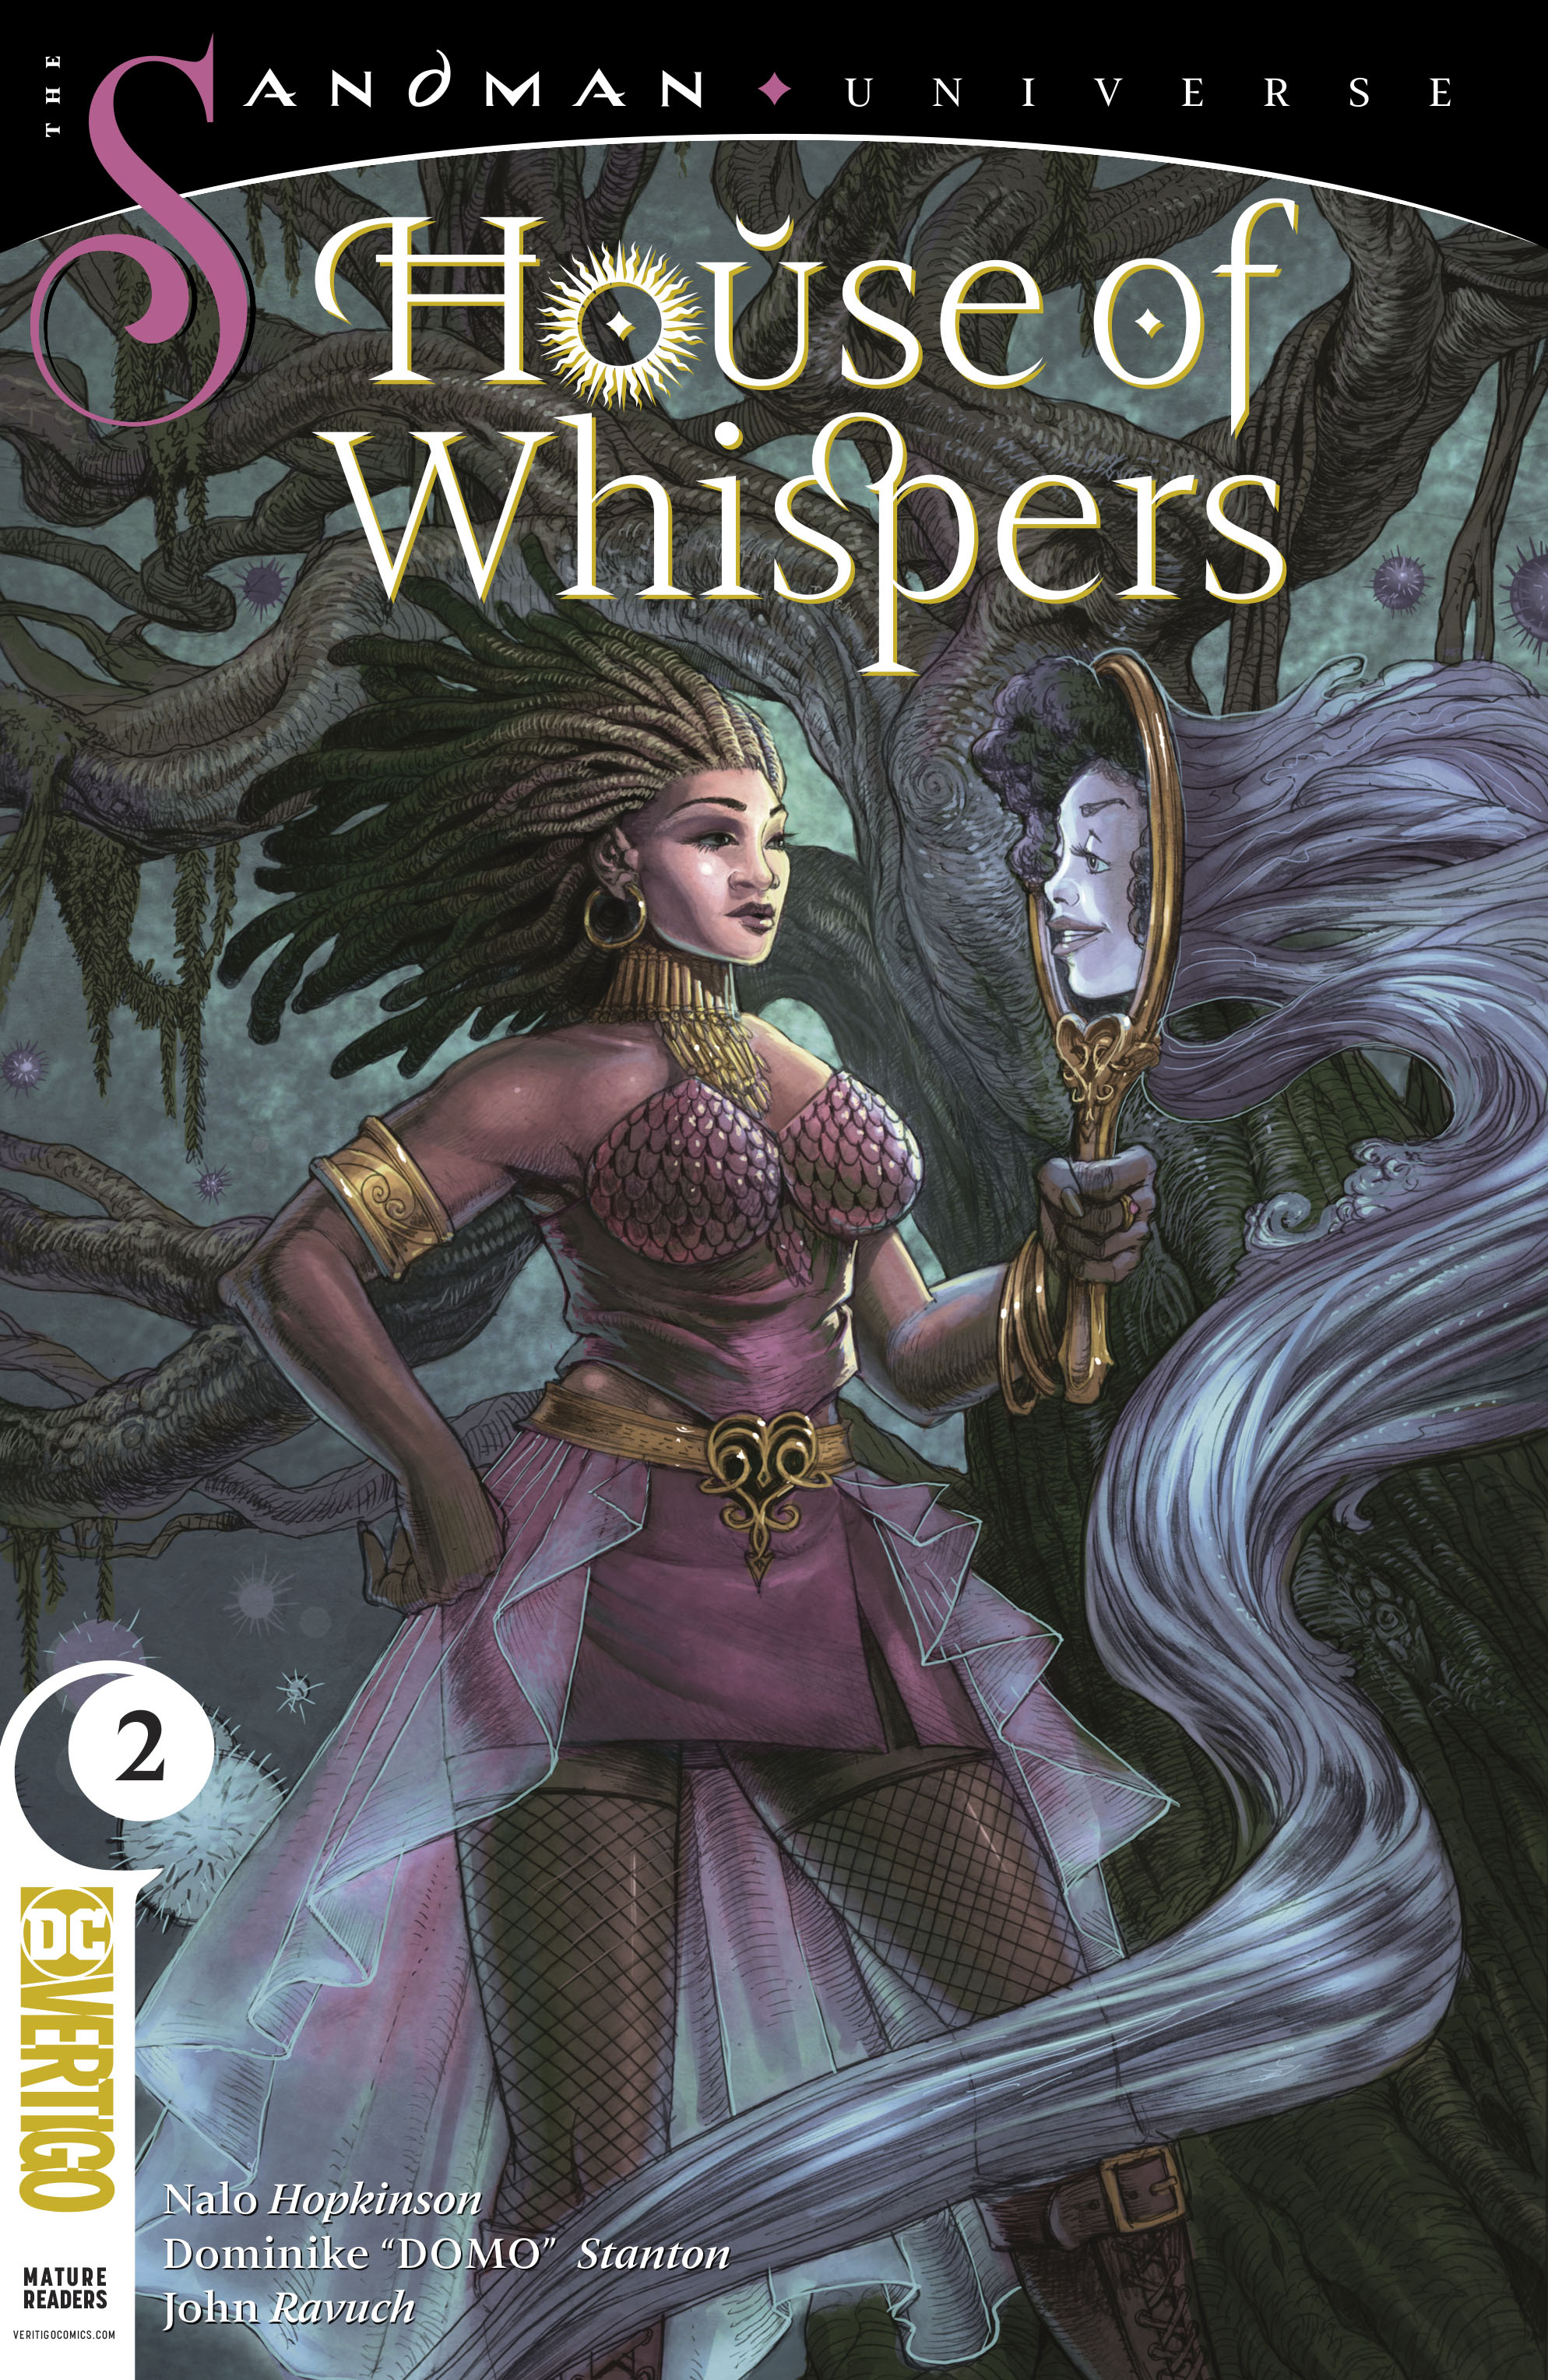 HOUSE OF WHISPERS #2 (MR)